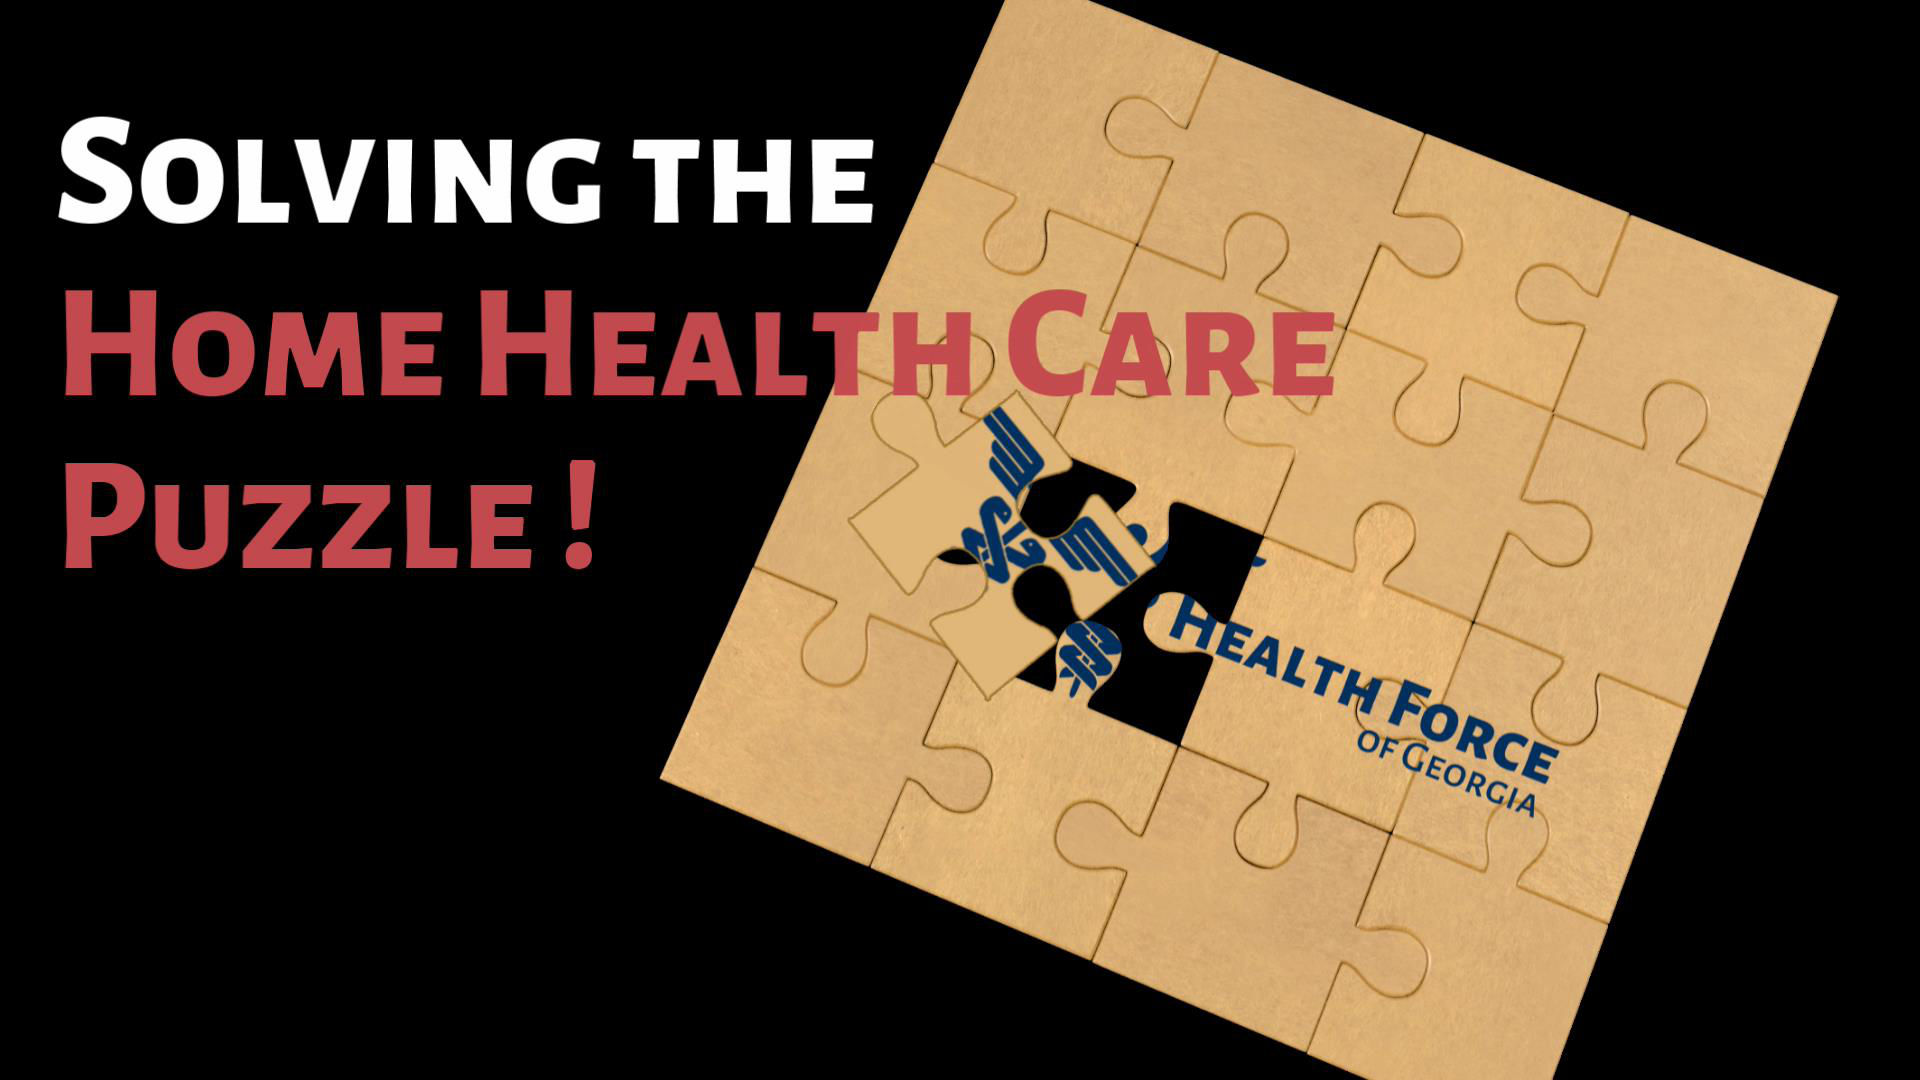 Solving the Home Health Care Puzzle - Health Force of Georgia